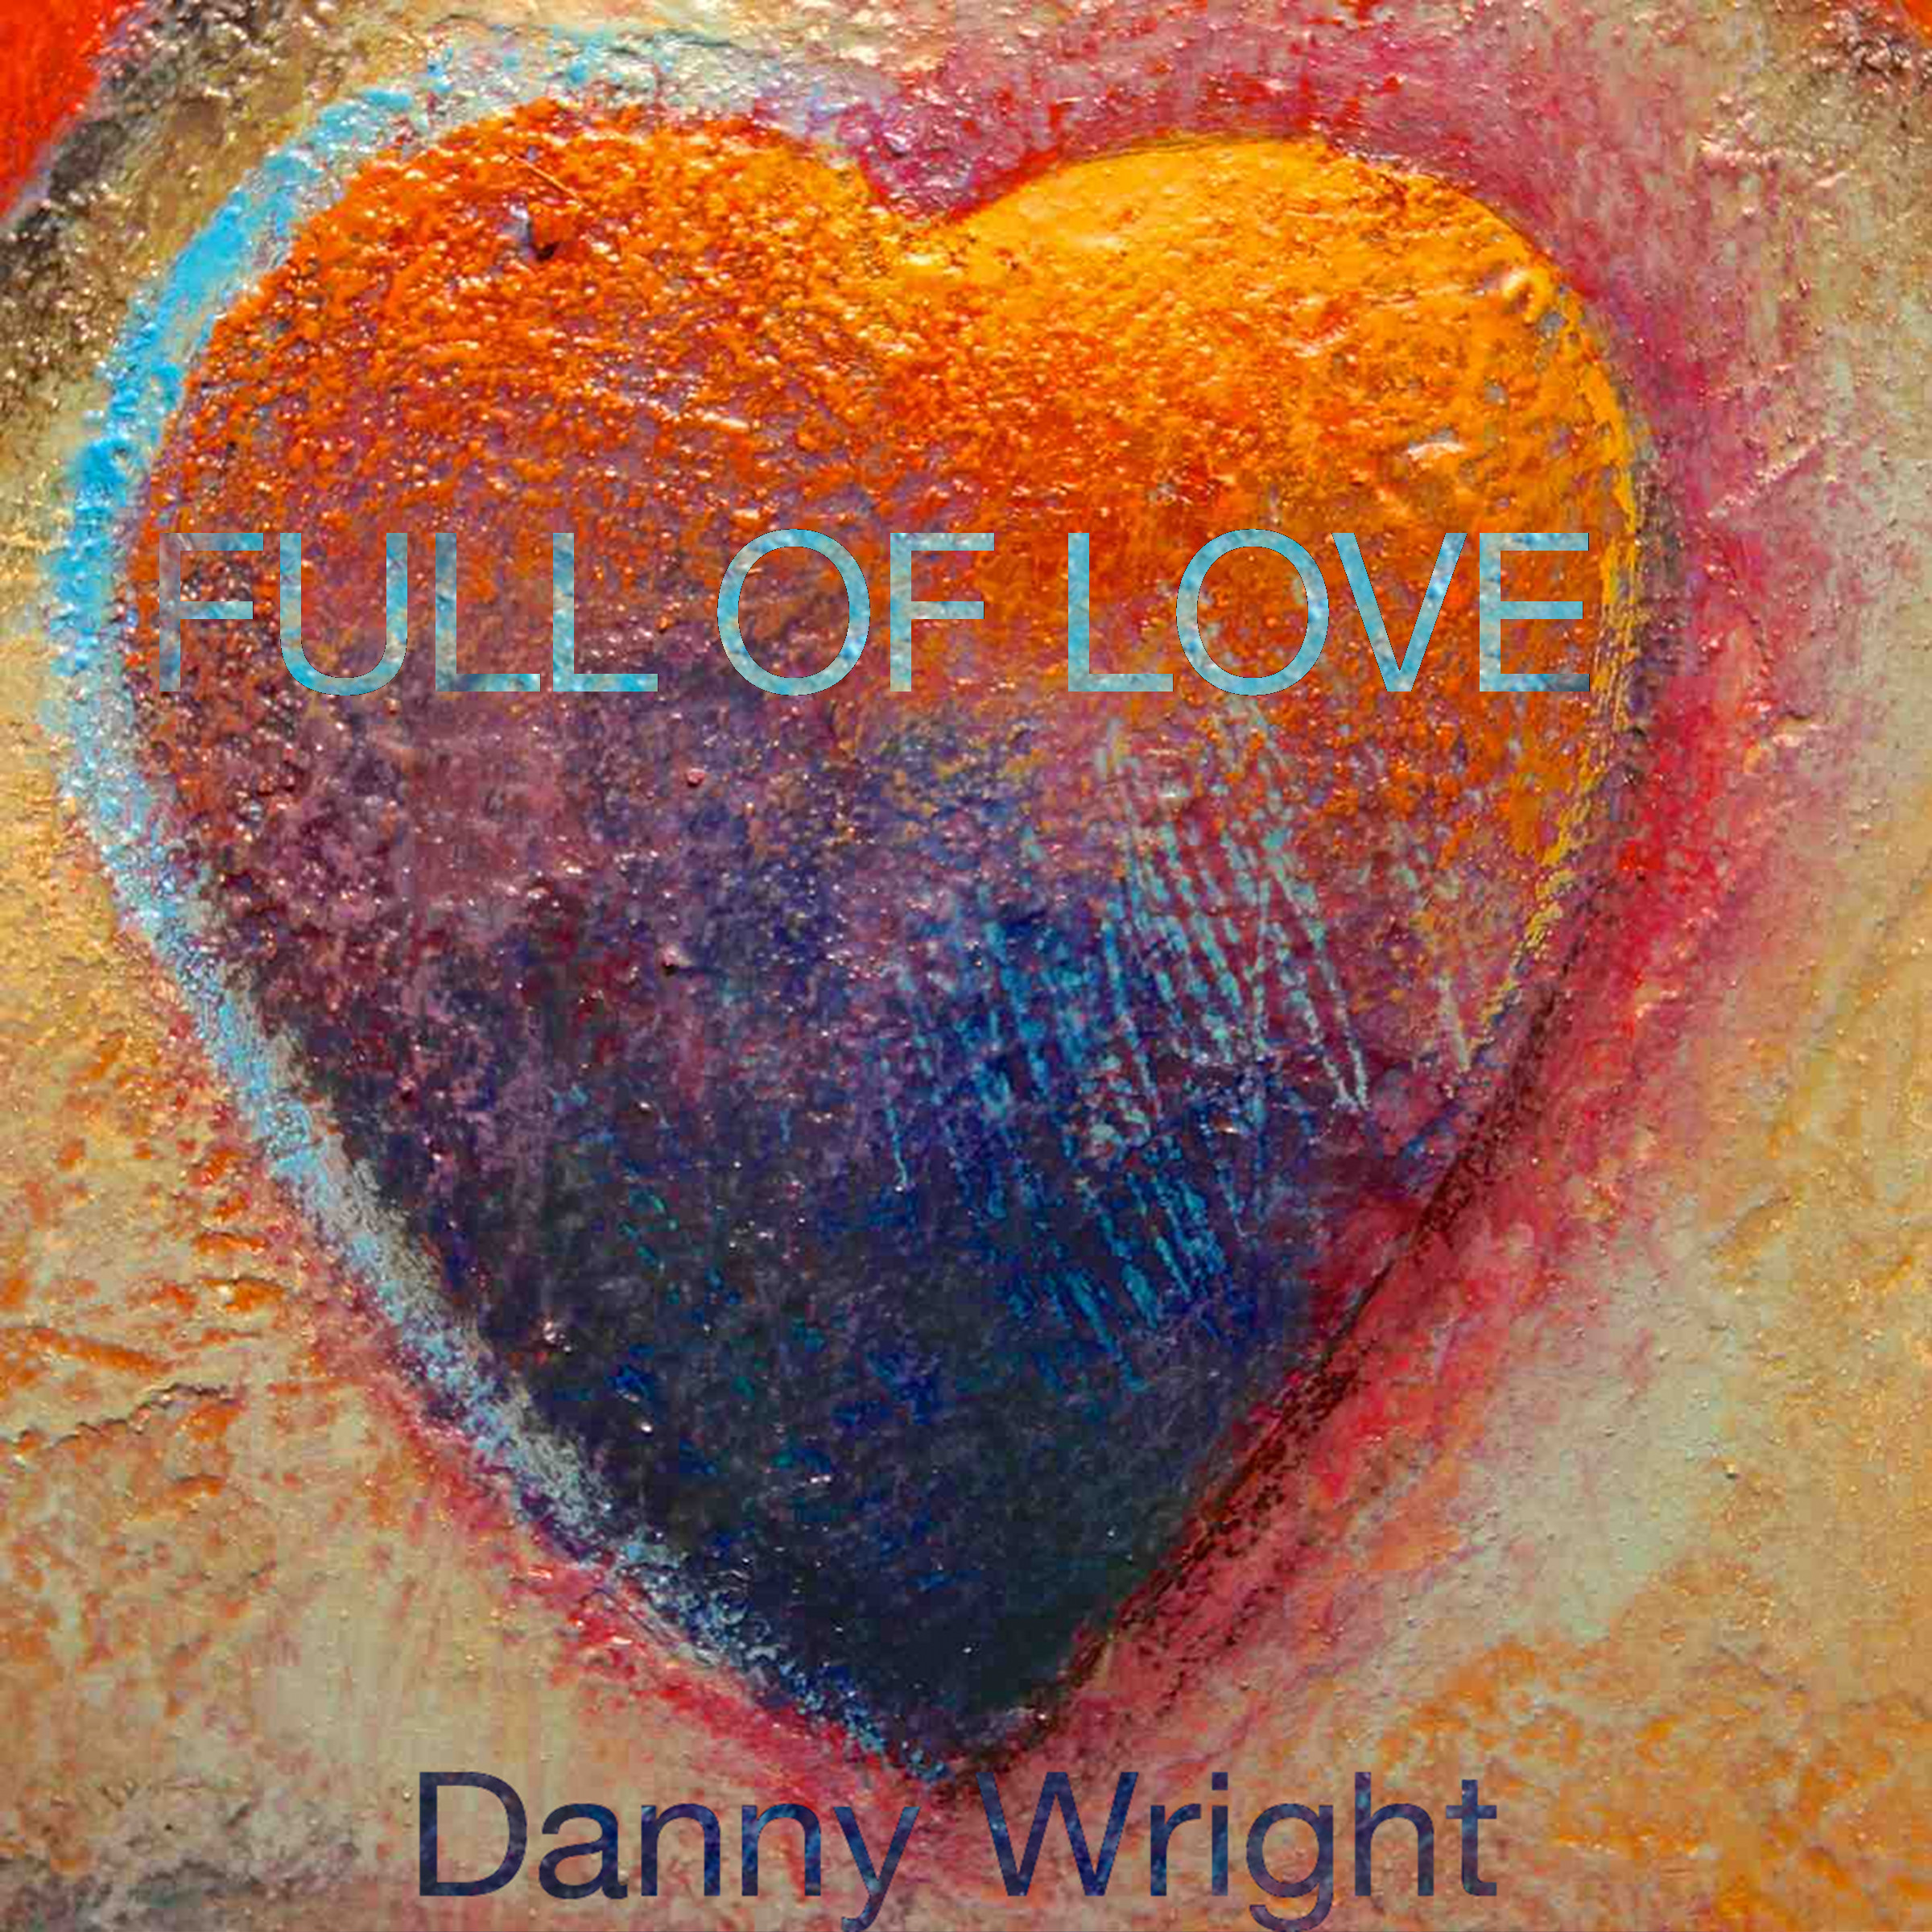 Pianist Danny Wright is Healing Hearts with FULL OF LOVE ...